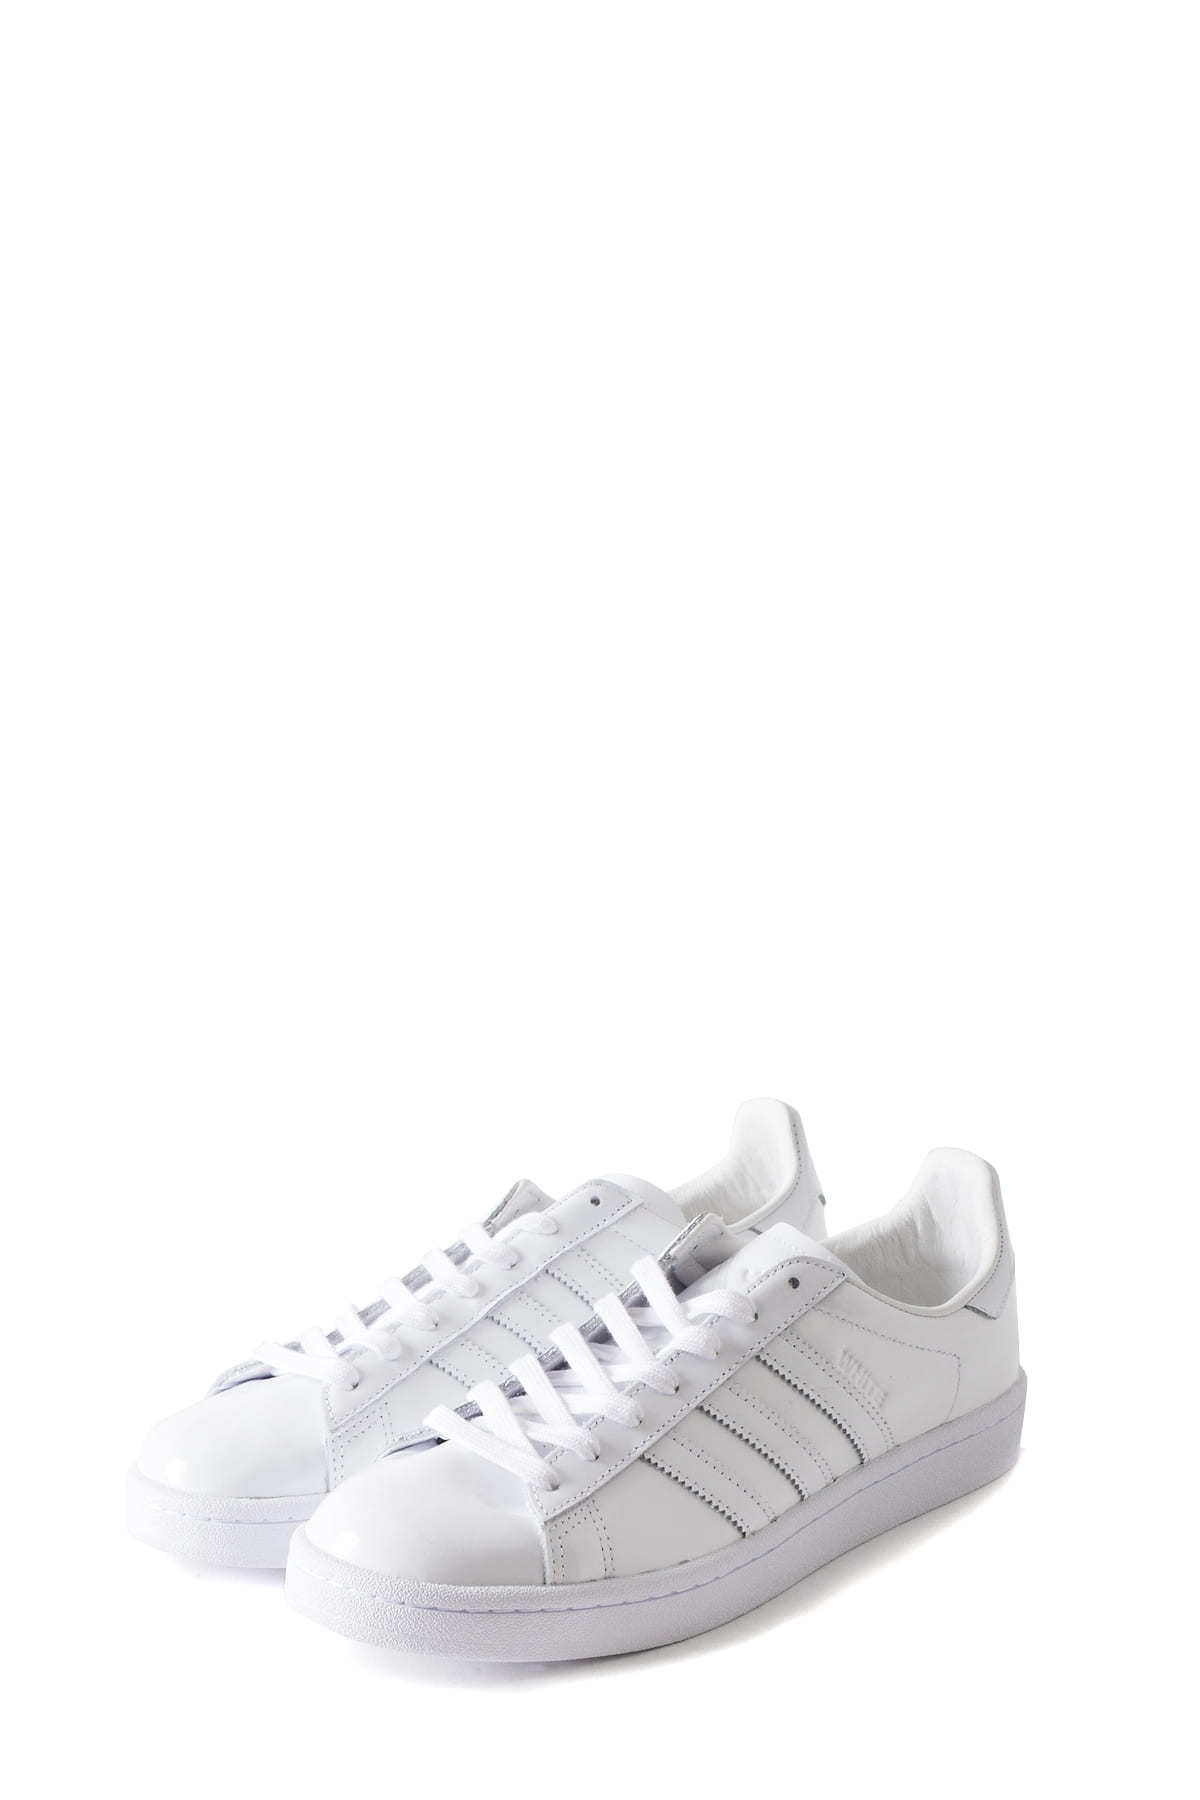 WM x adidas Originals : Campus 8 (White)